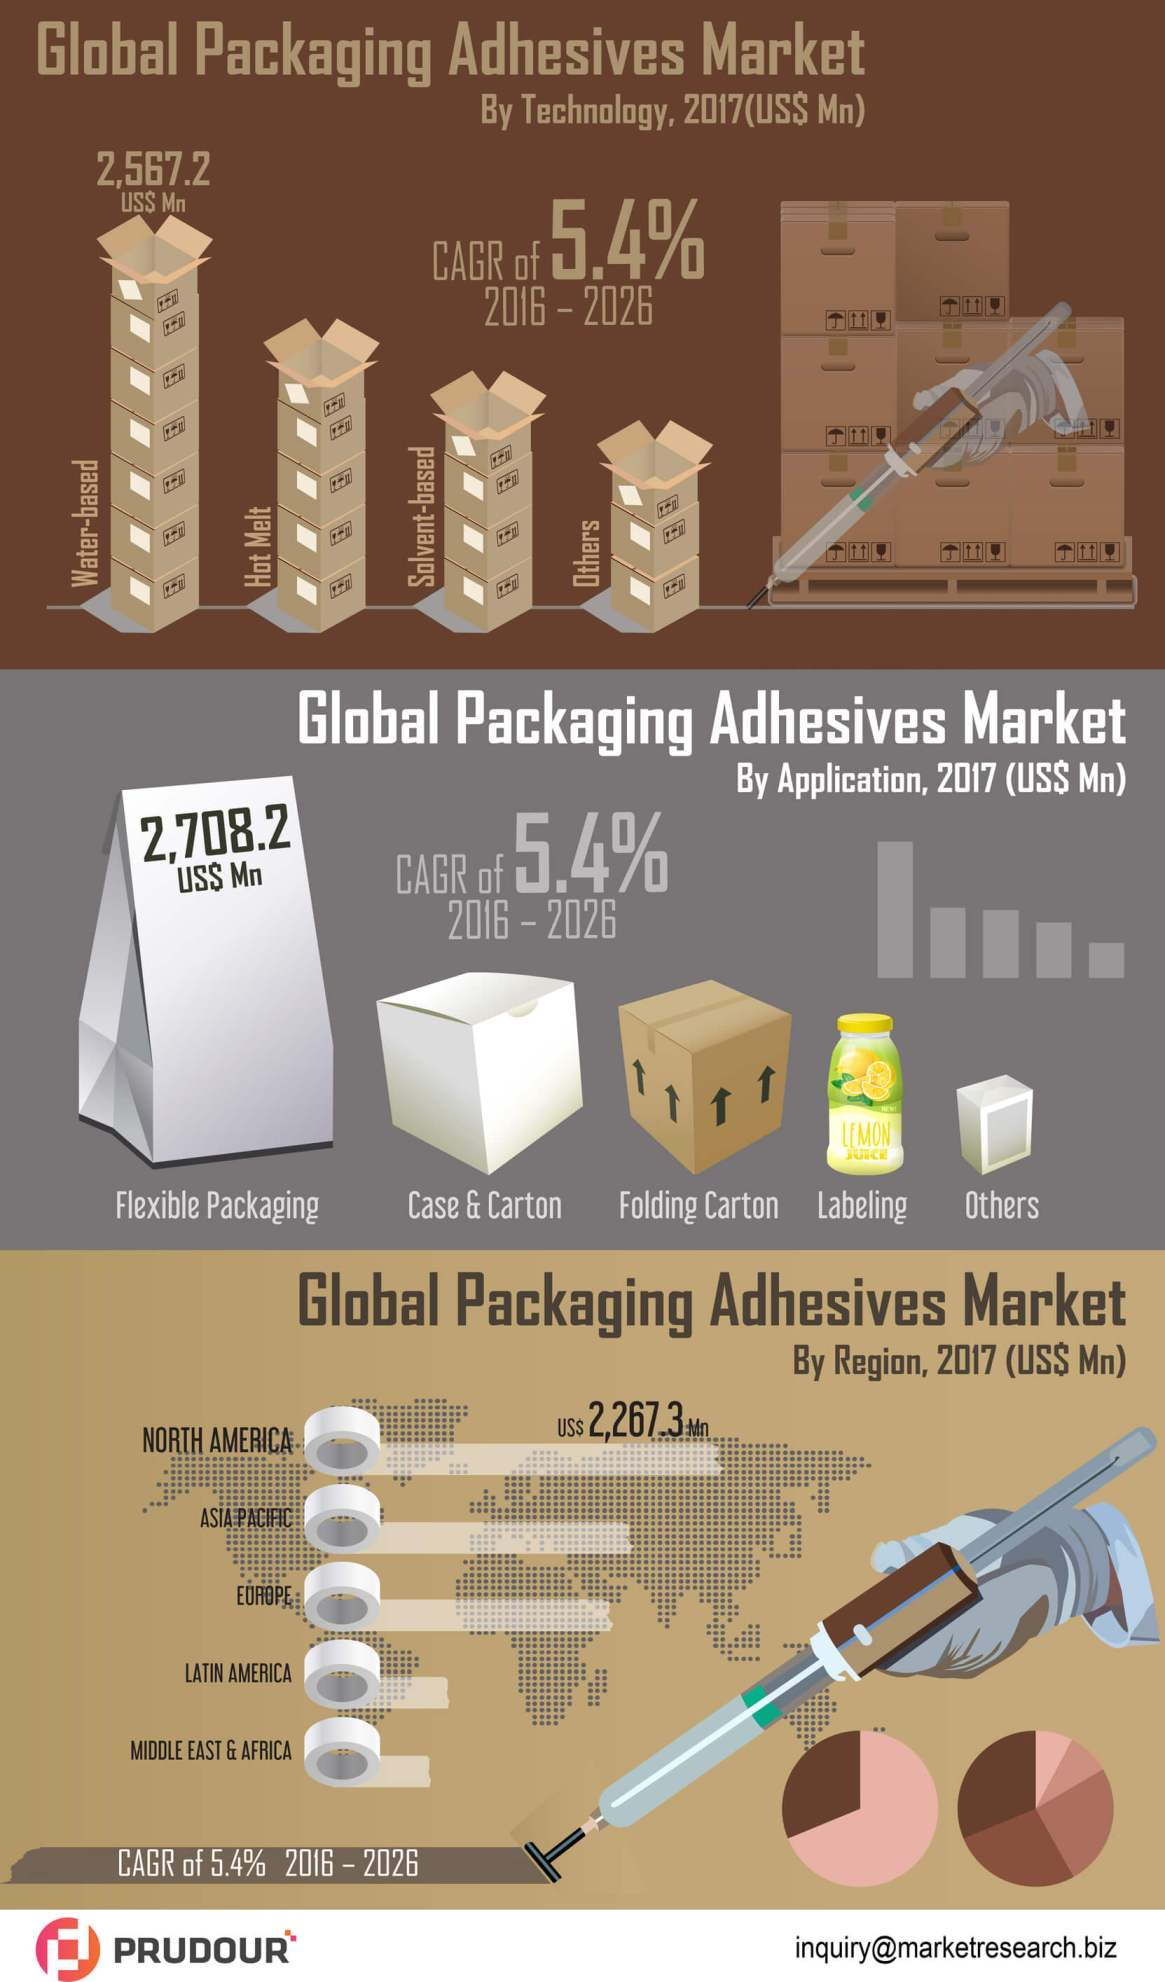 CAGR Of 5% : Global Packaging Adhesives Market about to hit CAGR of 5% from 2017 to 2026